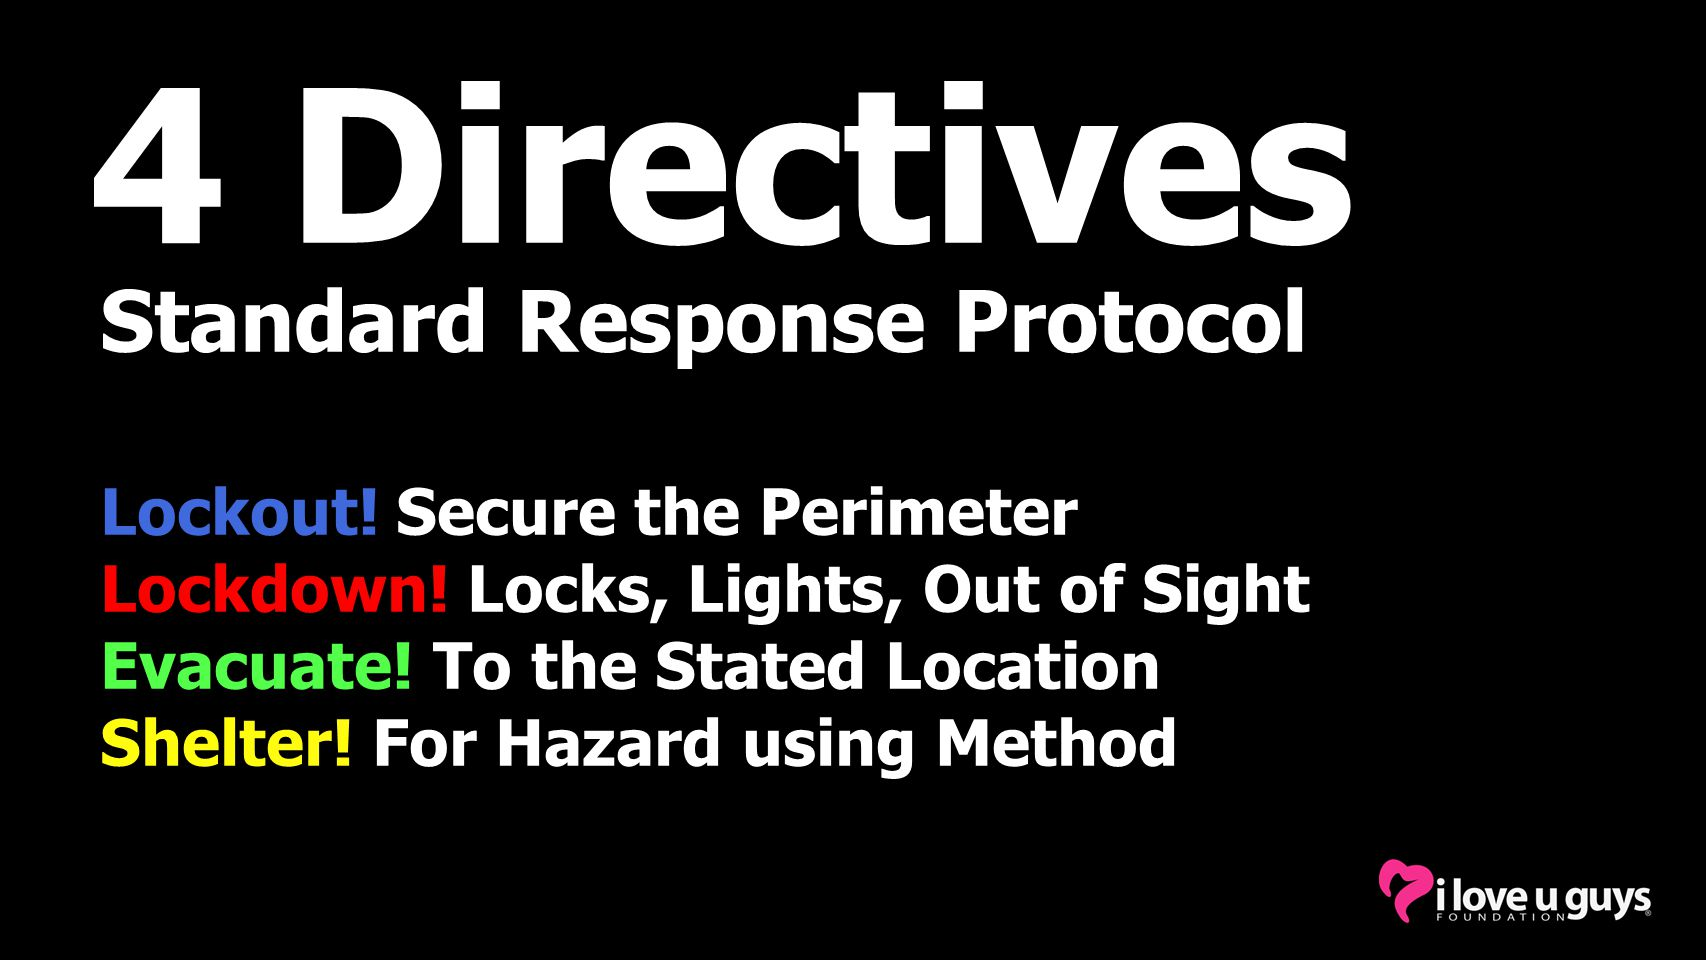 4 Directives Standard Response Protocol Lockout! Secure the Perimeter